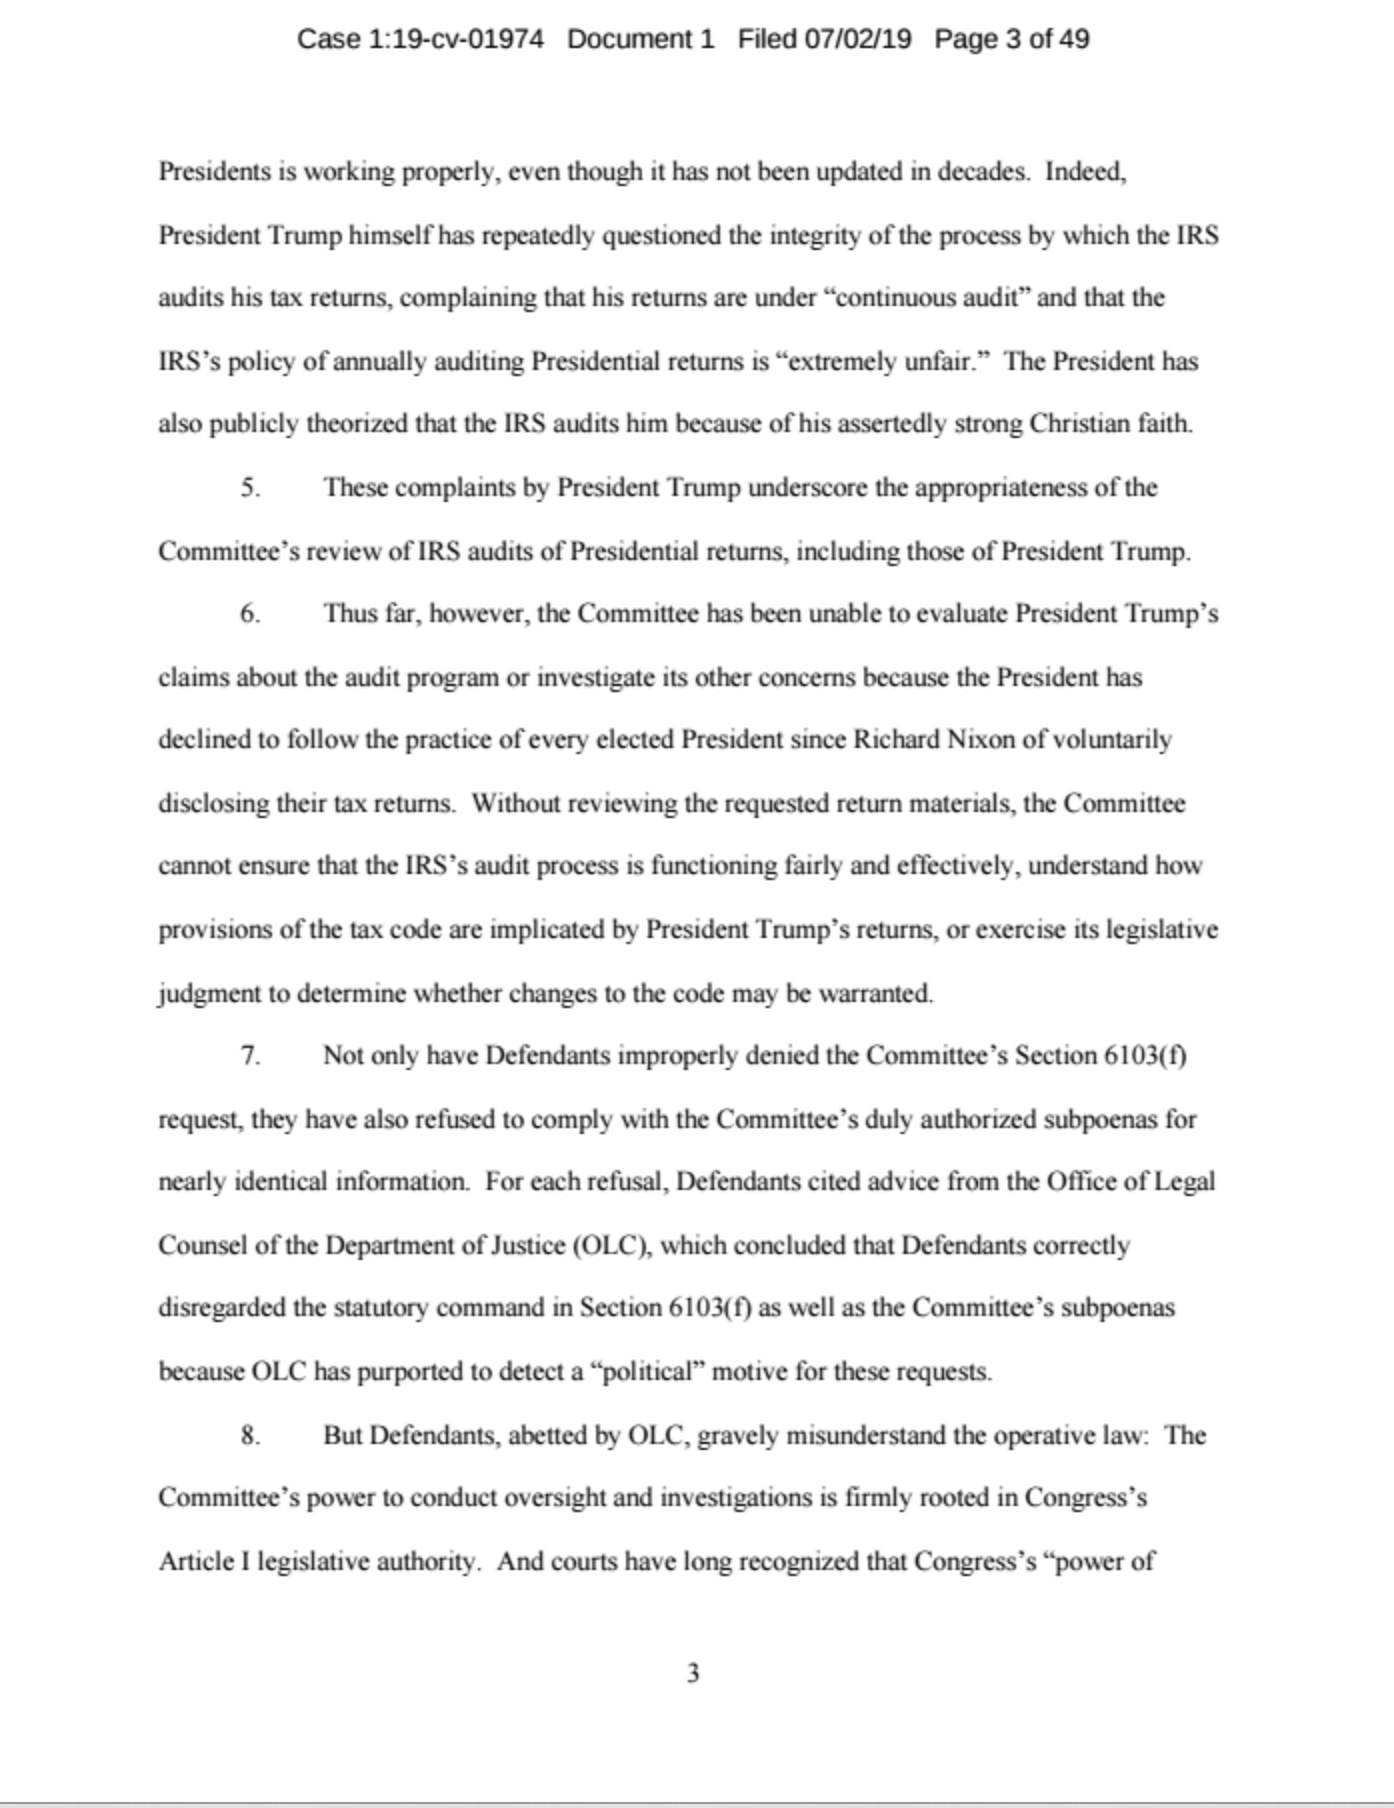 Screen-Shot-2019-07-02-at-11.29.31-AM JUST IN: House Ways And Means Committee Drops Bombshell Corruption Crime Donald Trump Politics Top Stories